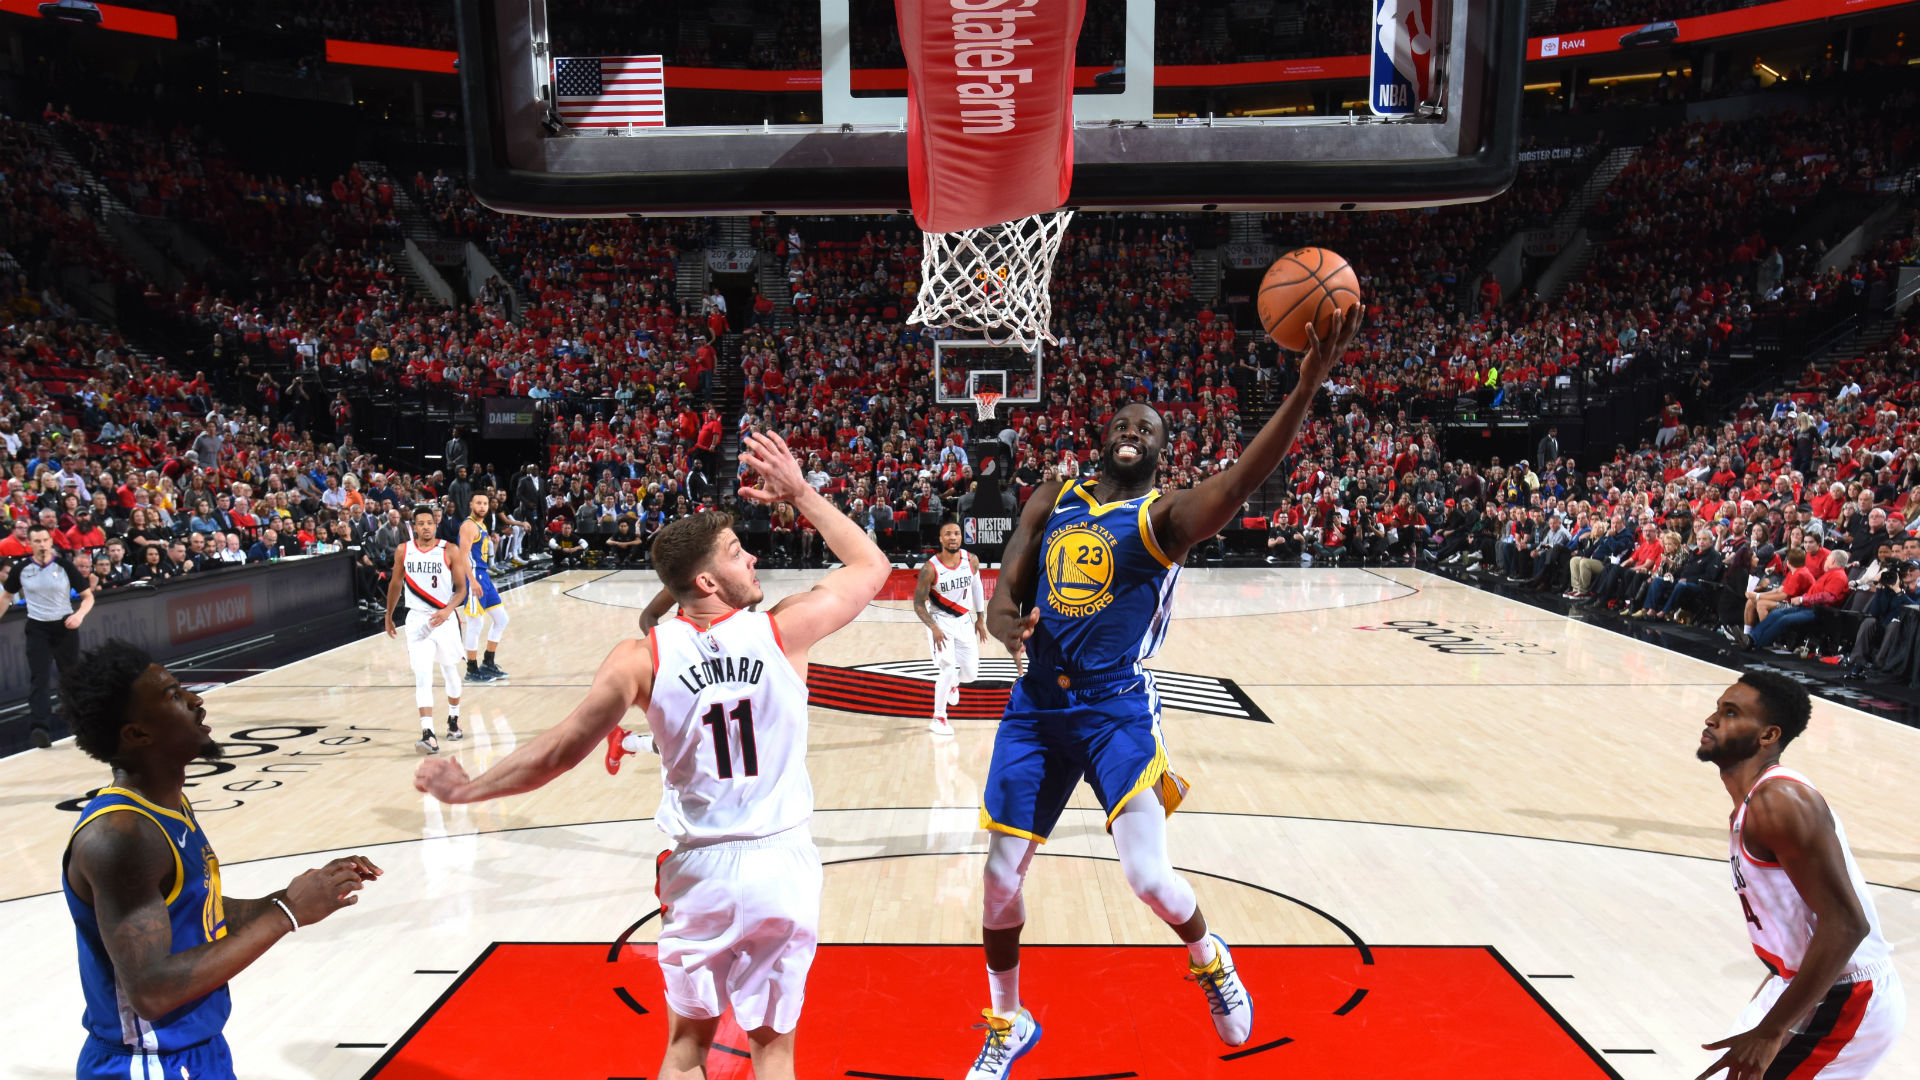 draymond-green-layup-052419-ftr-nba-getty